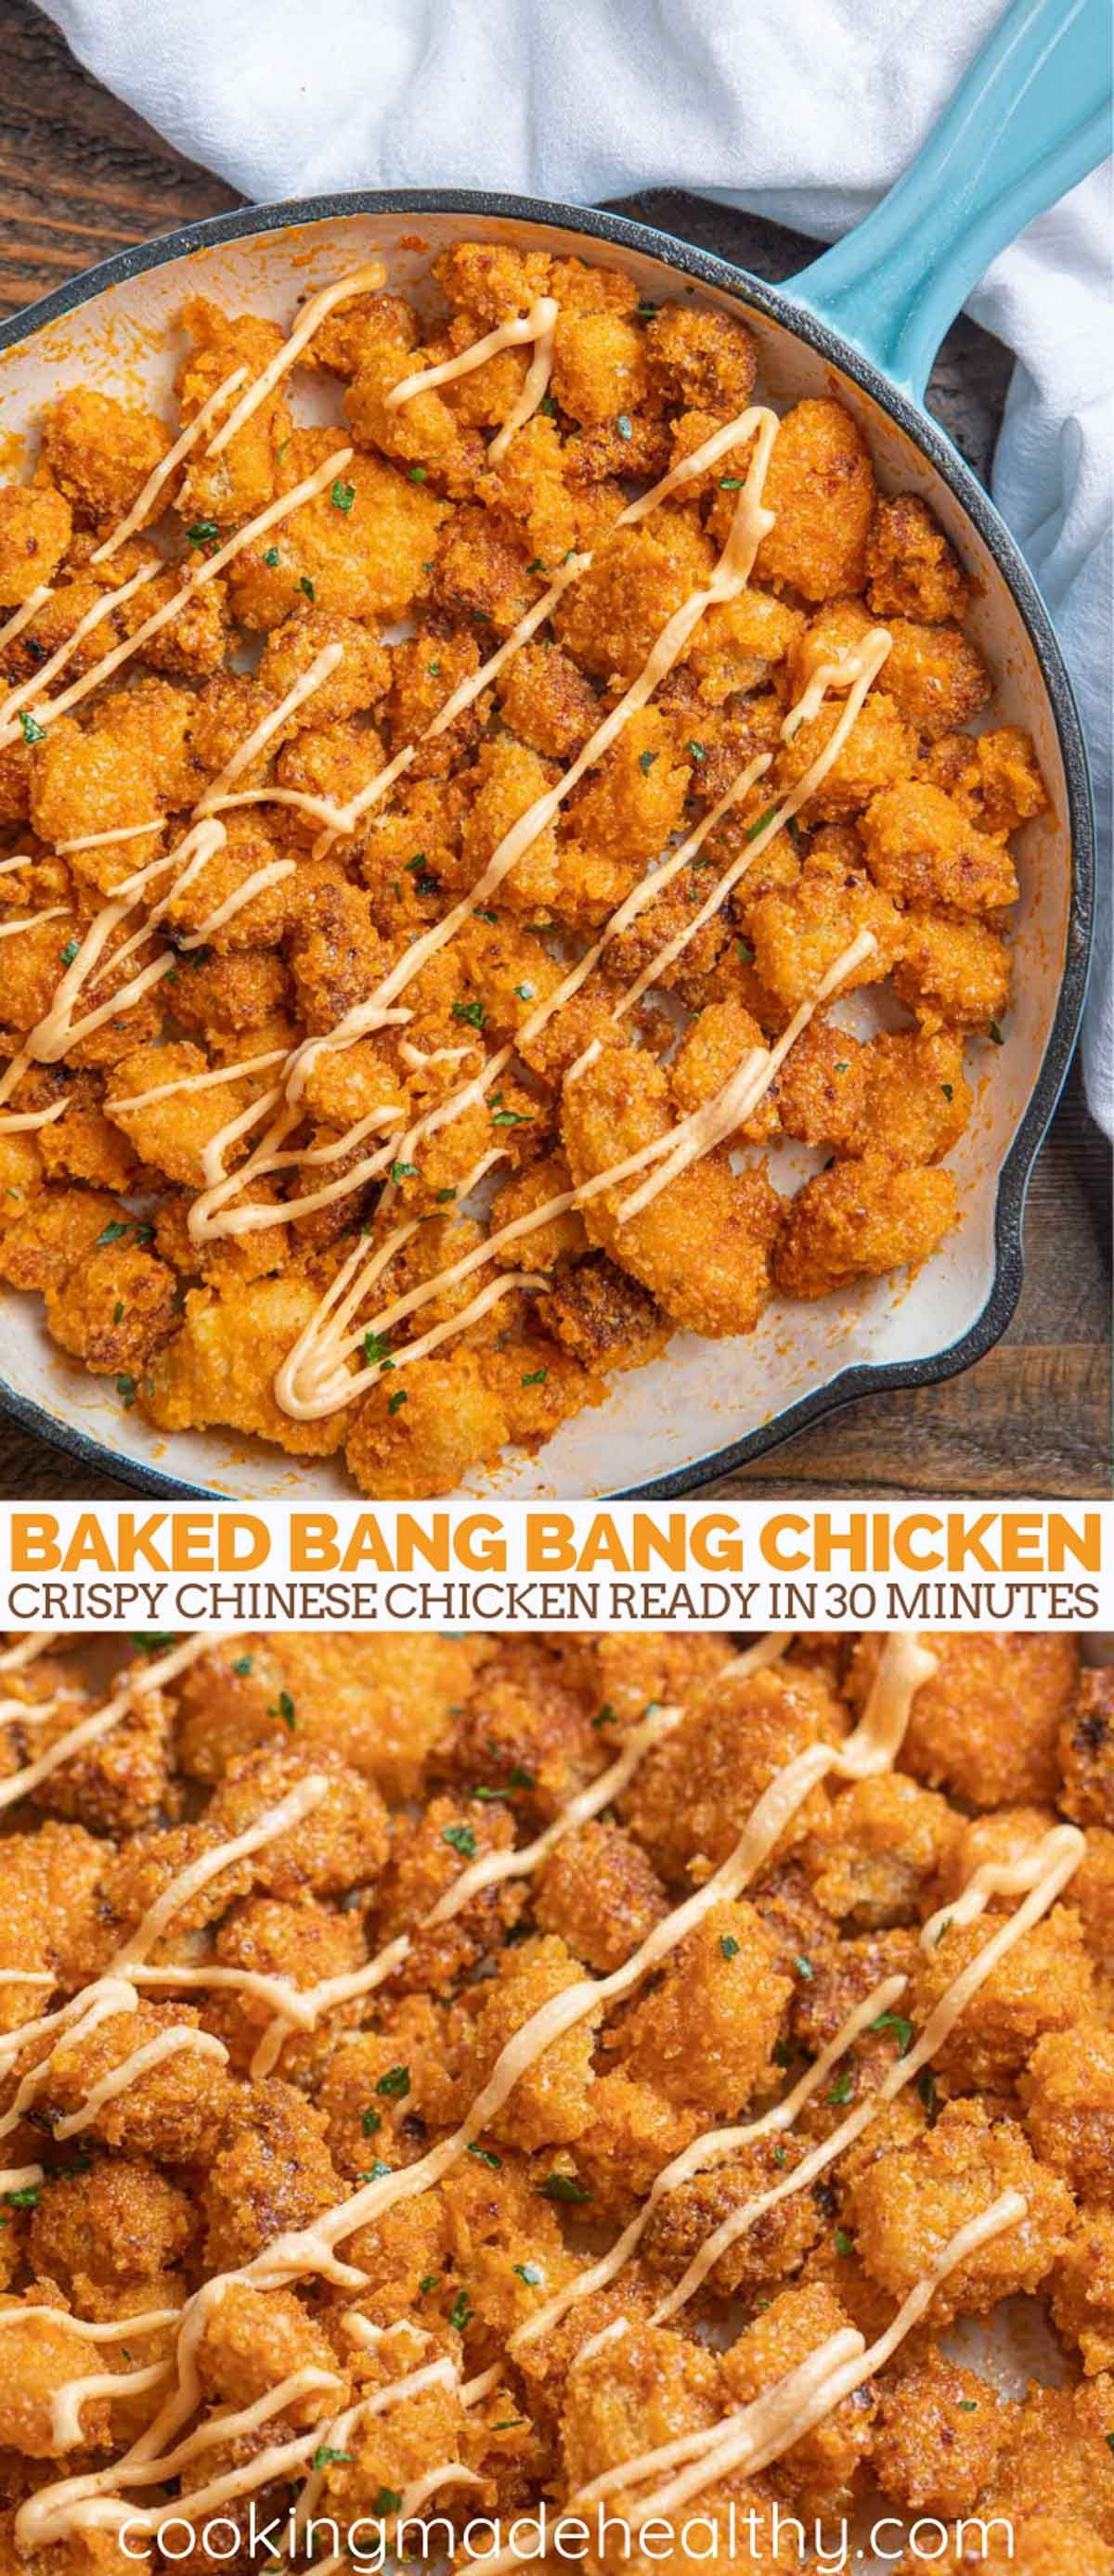 Baked Bang Bang Chicken is a crispy chicken Chinese restaurant favorite served in a delicious spicy homemade sauce, ready in 30 minutes. #bangbangchicken #bakedchiken #bakedbangbangchicken #chickenrecipes #chineserecipes #chinesefood #chinese #easychickenrecipes #cookingmadehealthy #dinnerrecipes